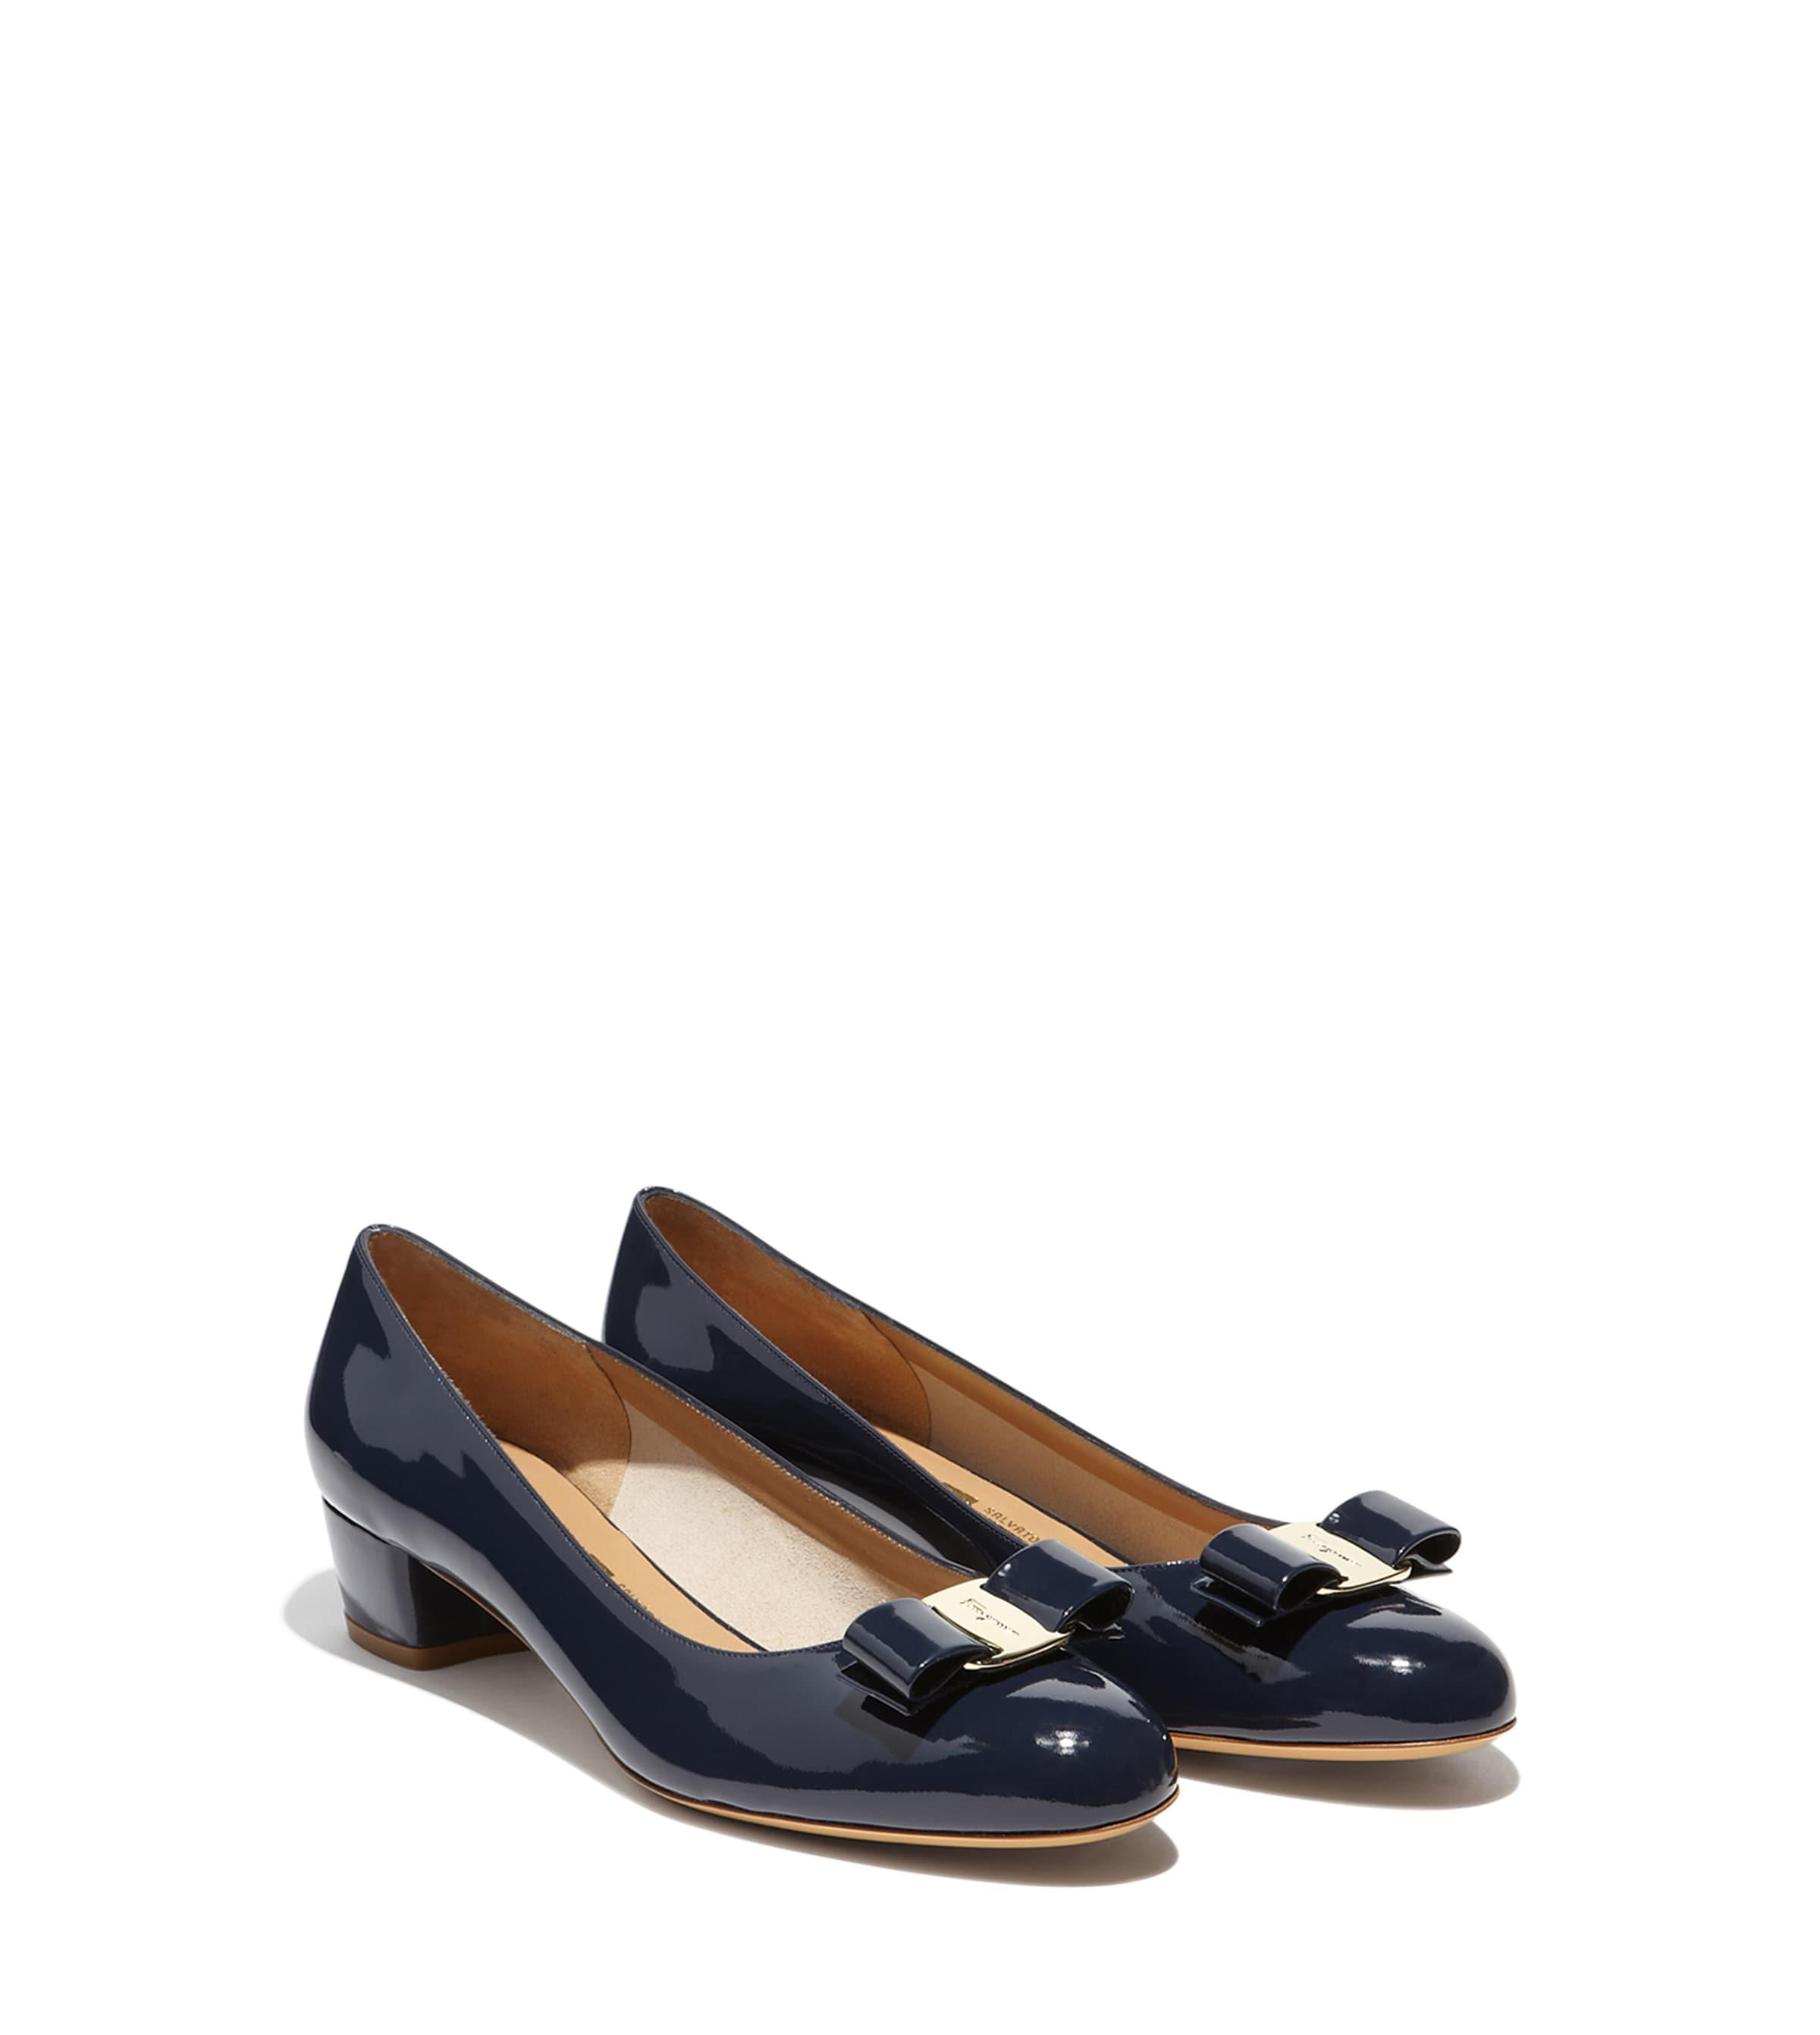 deca5163233a Lyst - Ferragamo Vara Bow Pump Shoe in Blue - Save 5%